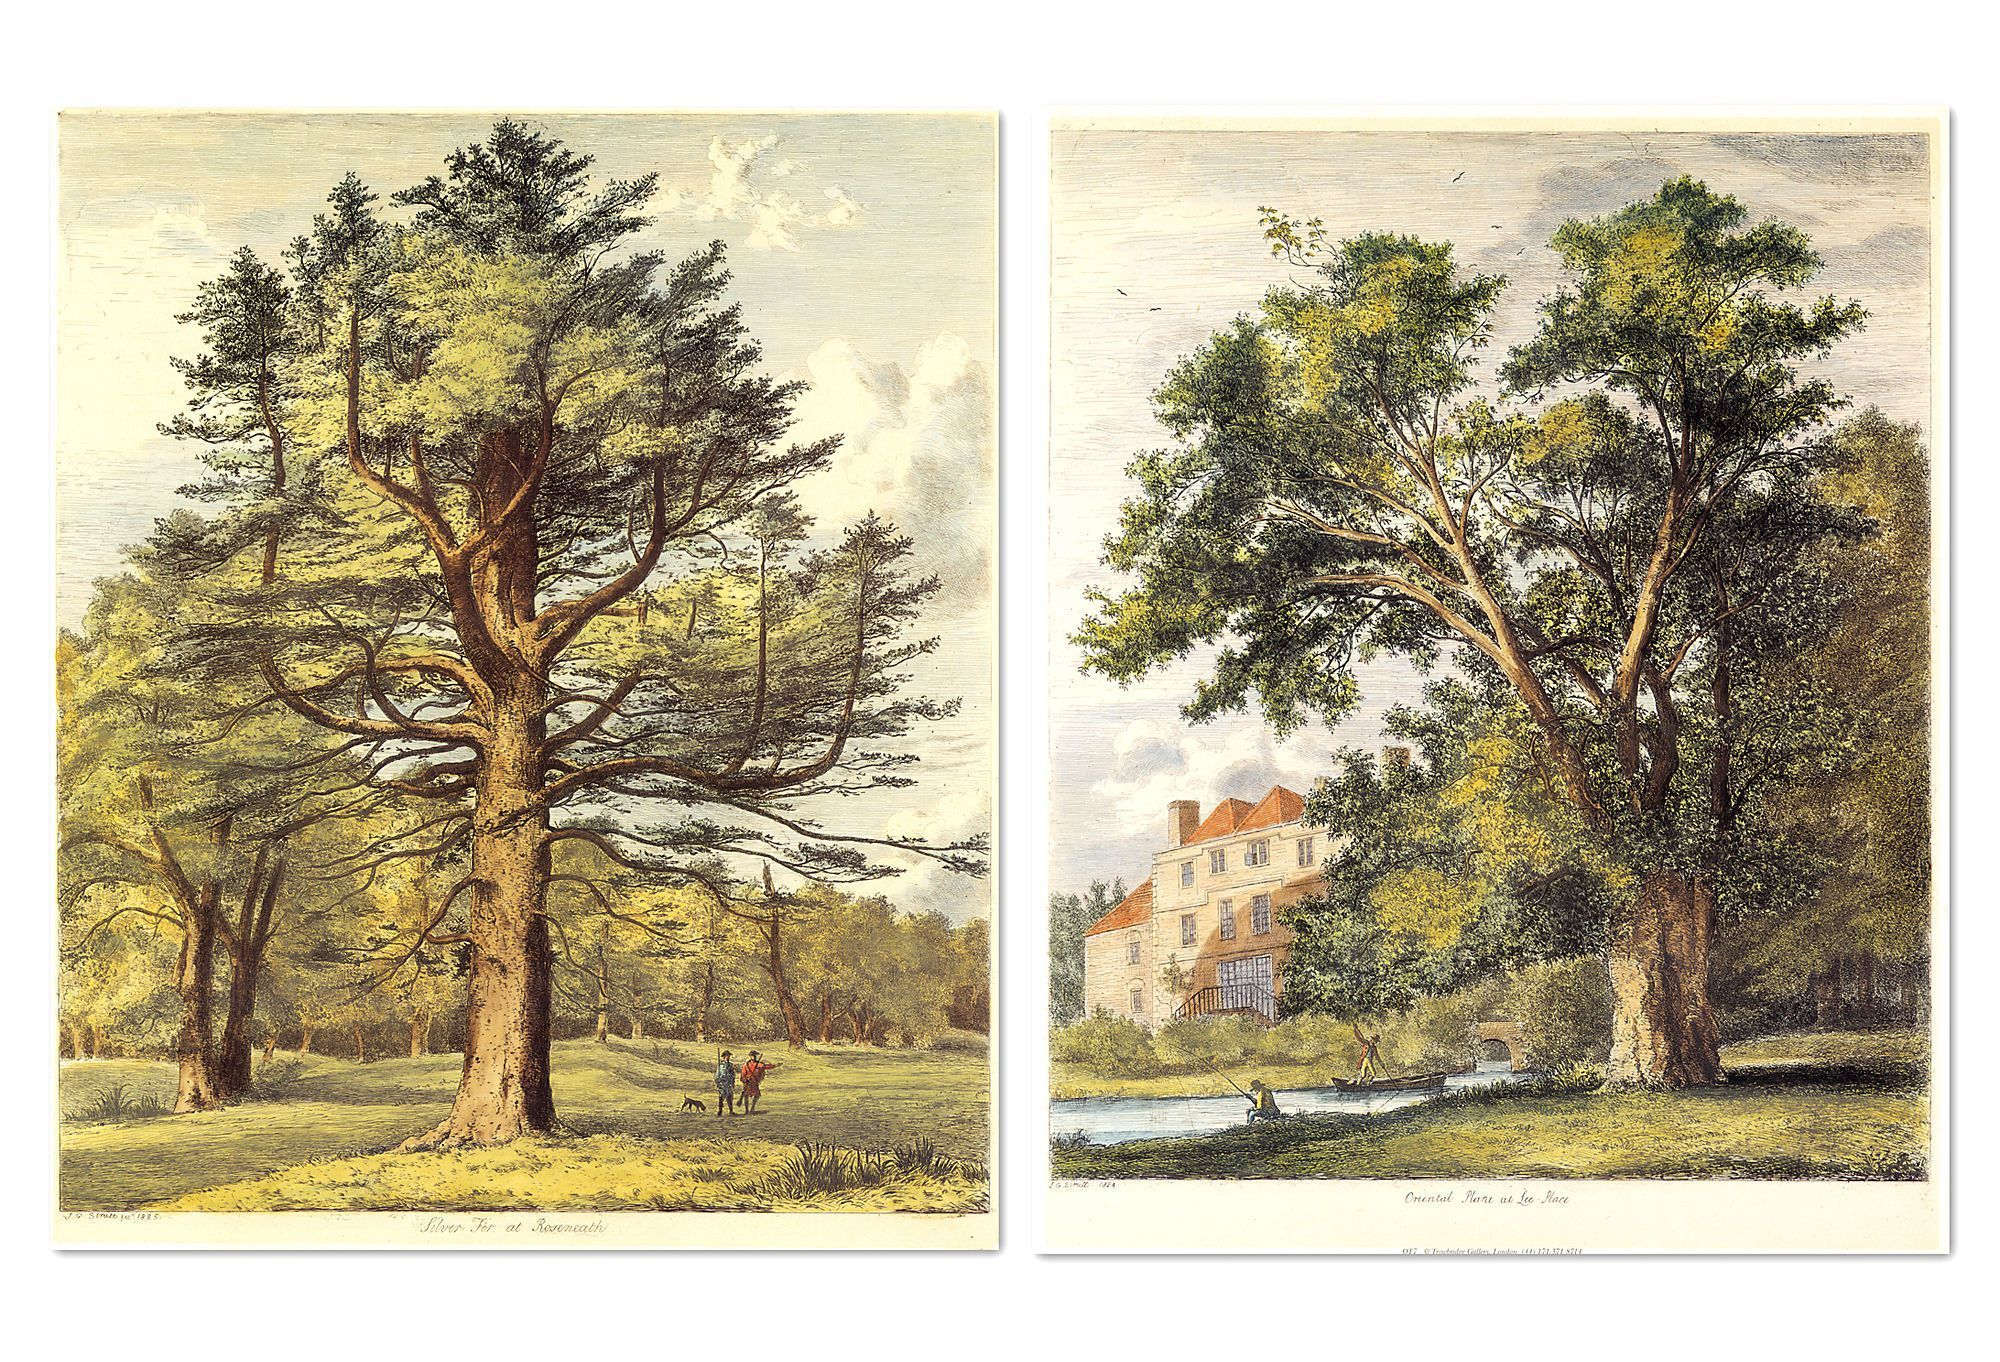 """Jacob G. Strutt, Trees II, Set of Two -- A set of two vintage reproductions of """"Silver Fir at Rosemeath"""" and """"Oriental Plane at Lee-Place"""" by English artist Jacob George Strutt, done in the style of Constable. Published in 1826, Strutt's """"Sylva Britannica"""" is a selection of """"portraits of forest trees distinguished for their antiquity, magnitude and beauty."""""""